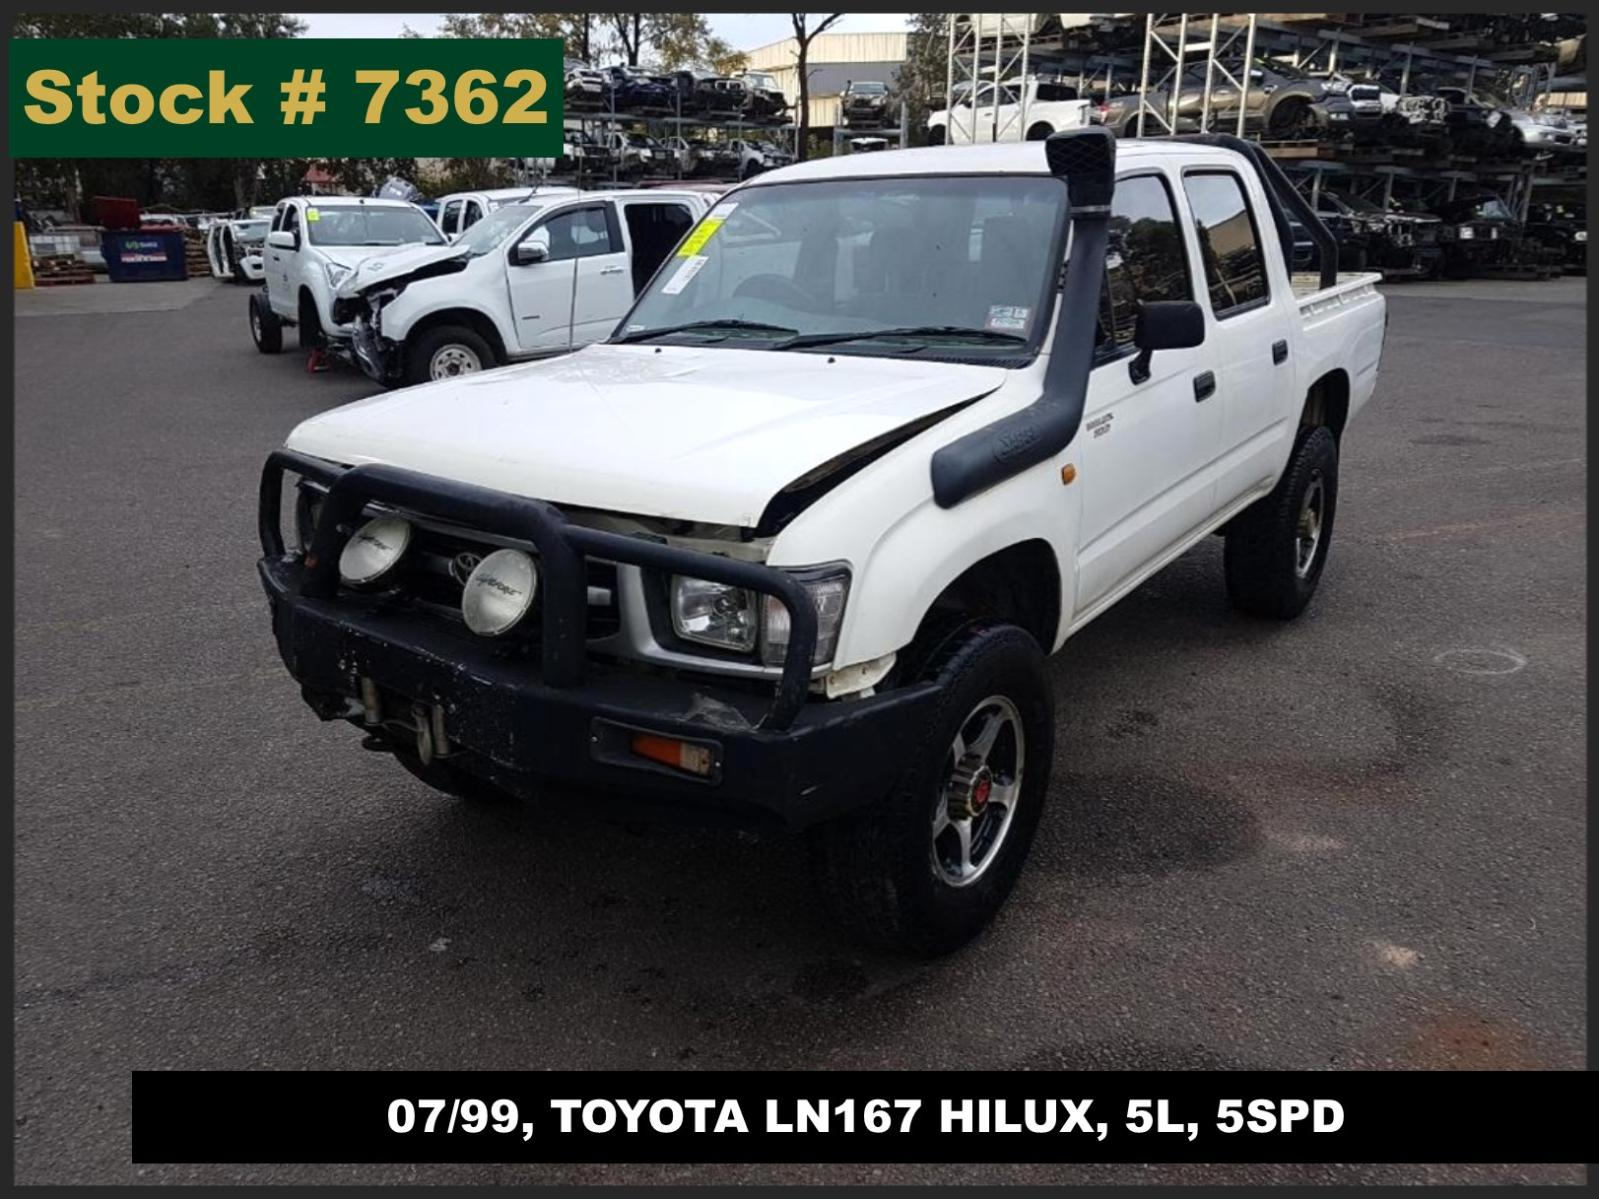 Image for a Toyota Hilux 1999 4 Door Utility